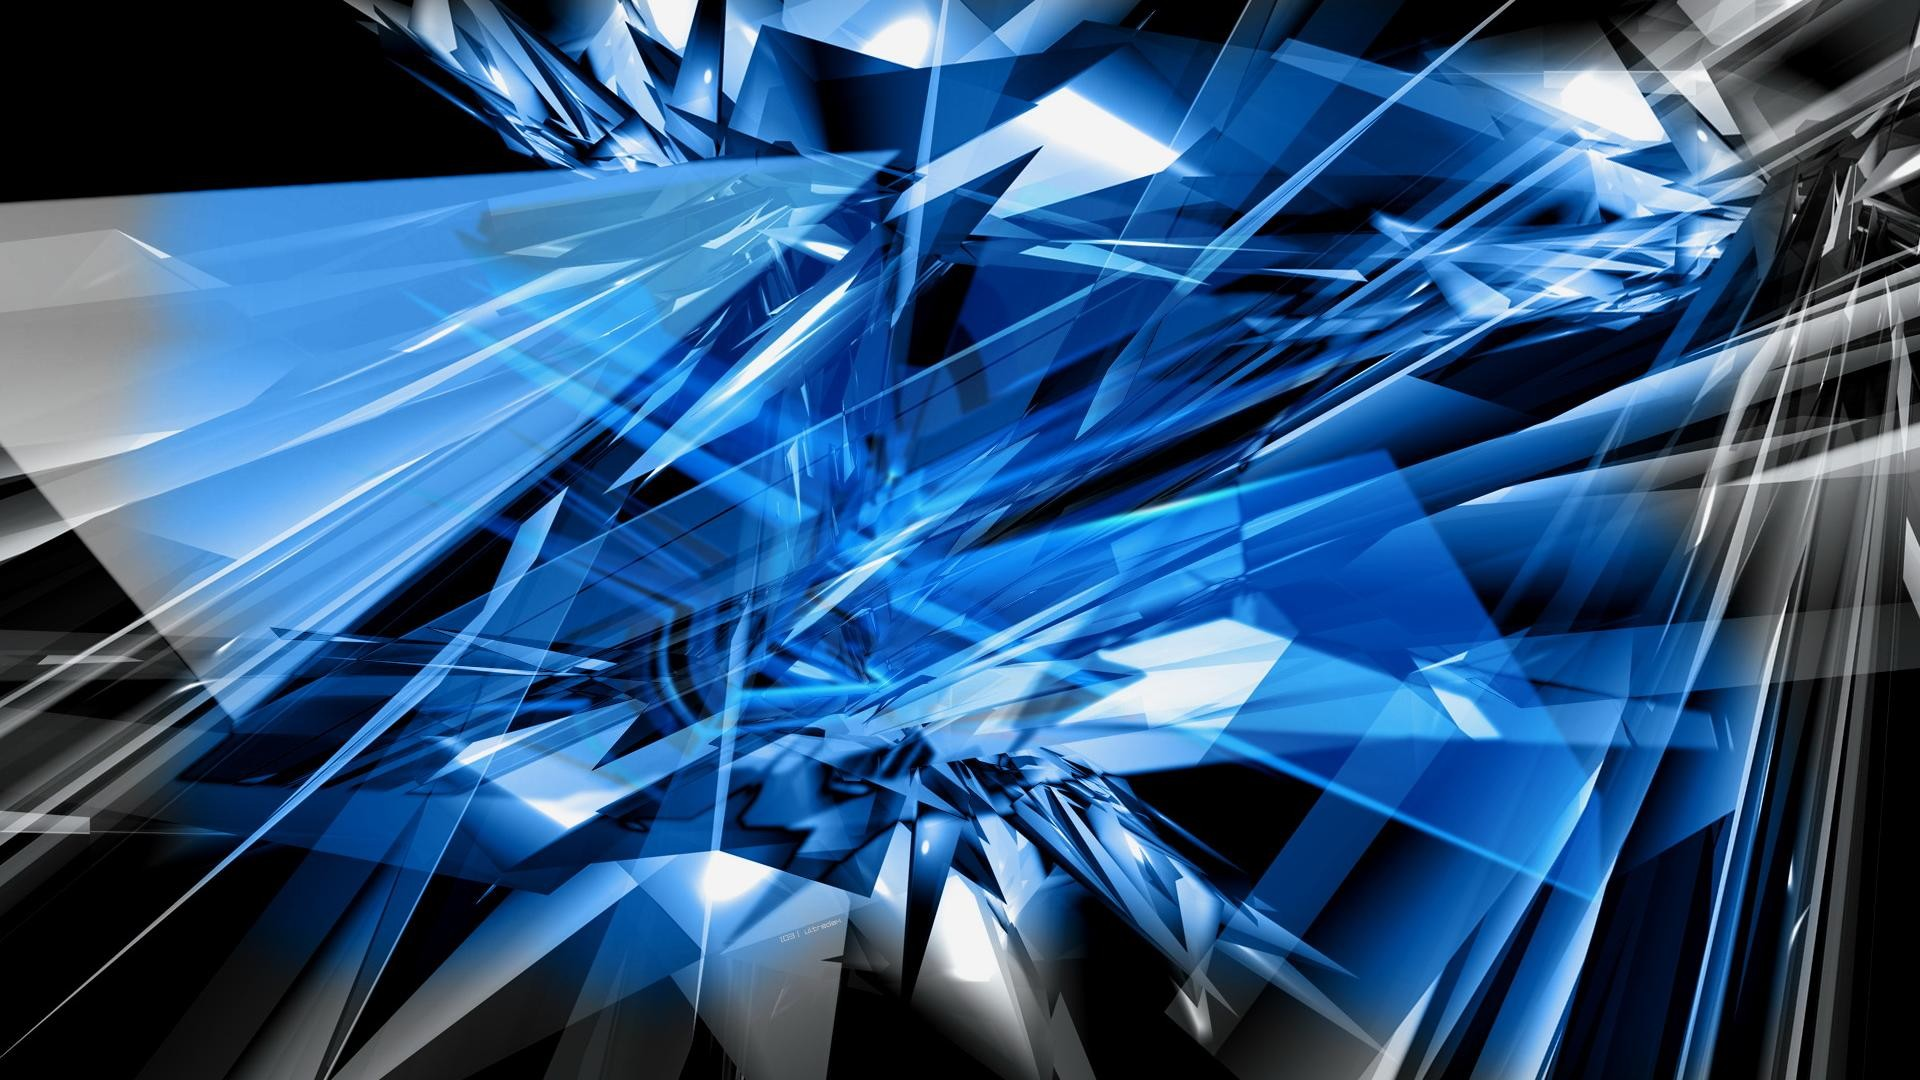 Abstract Blue Design Backgrounds Widescreen and HD background Wallpaper